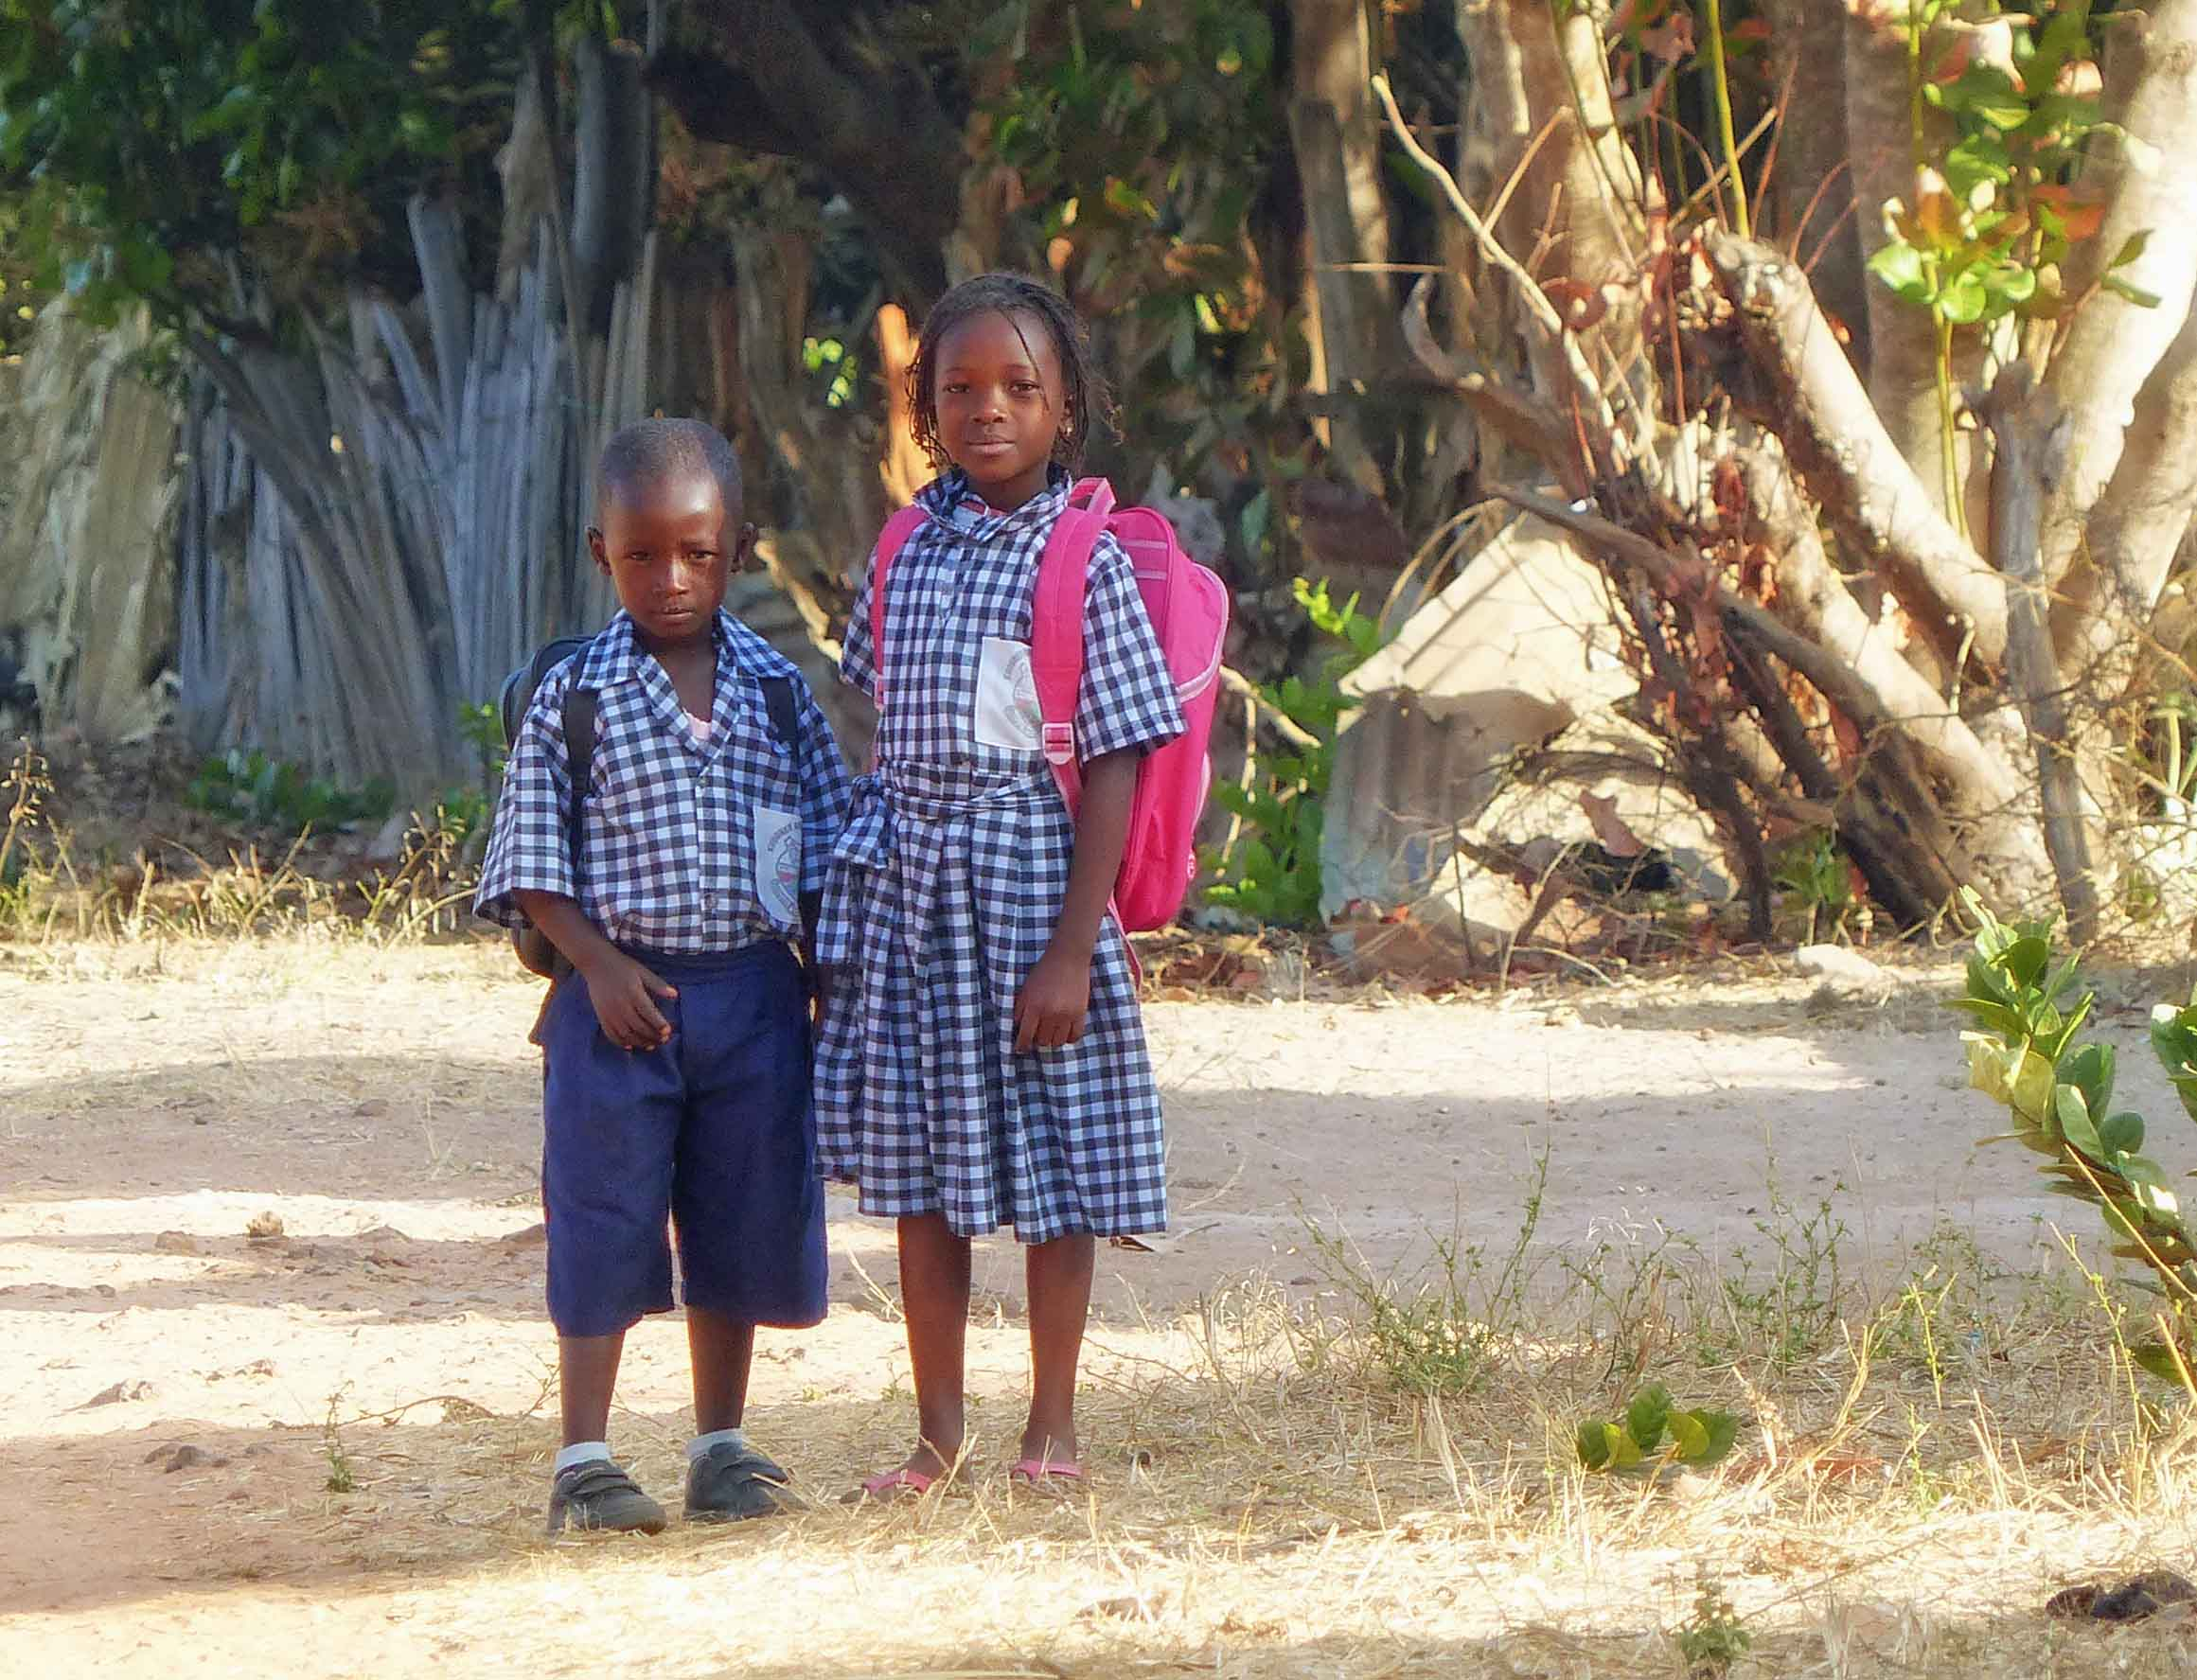 Boy and girl in blue checked uniform